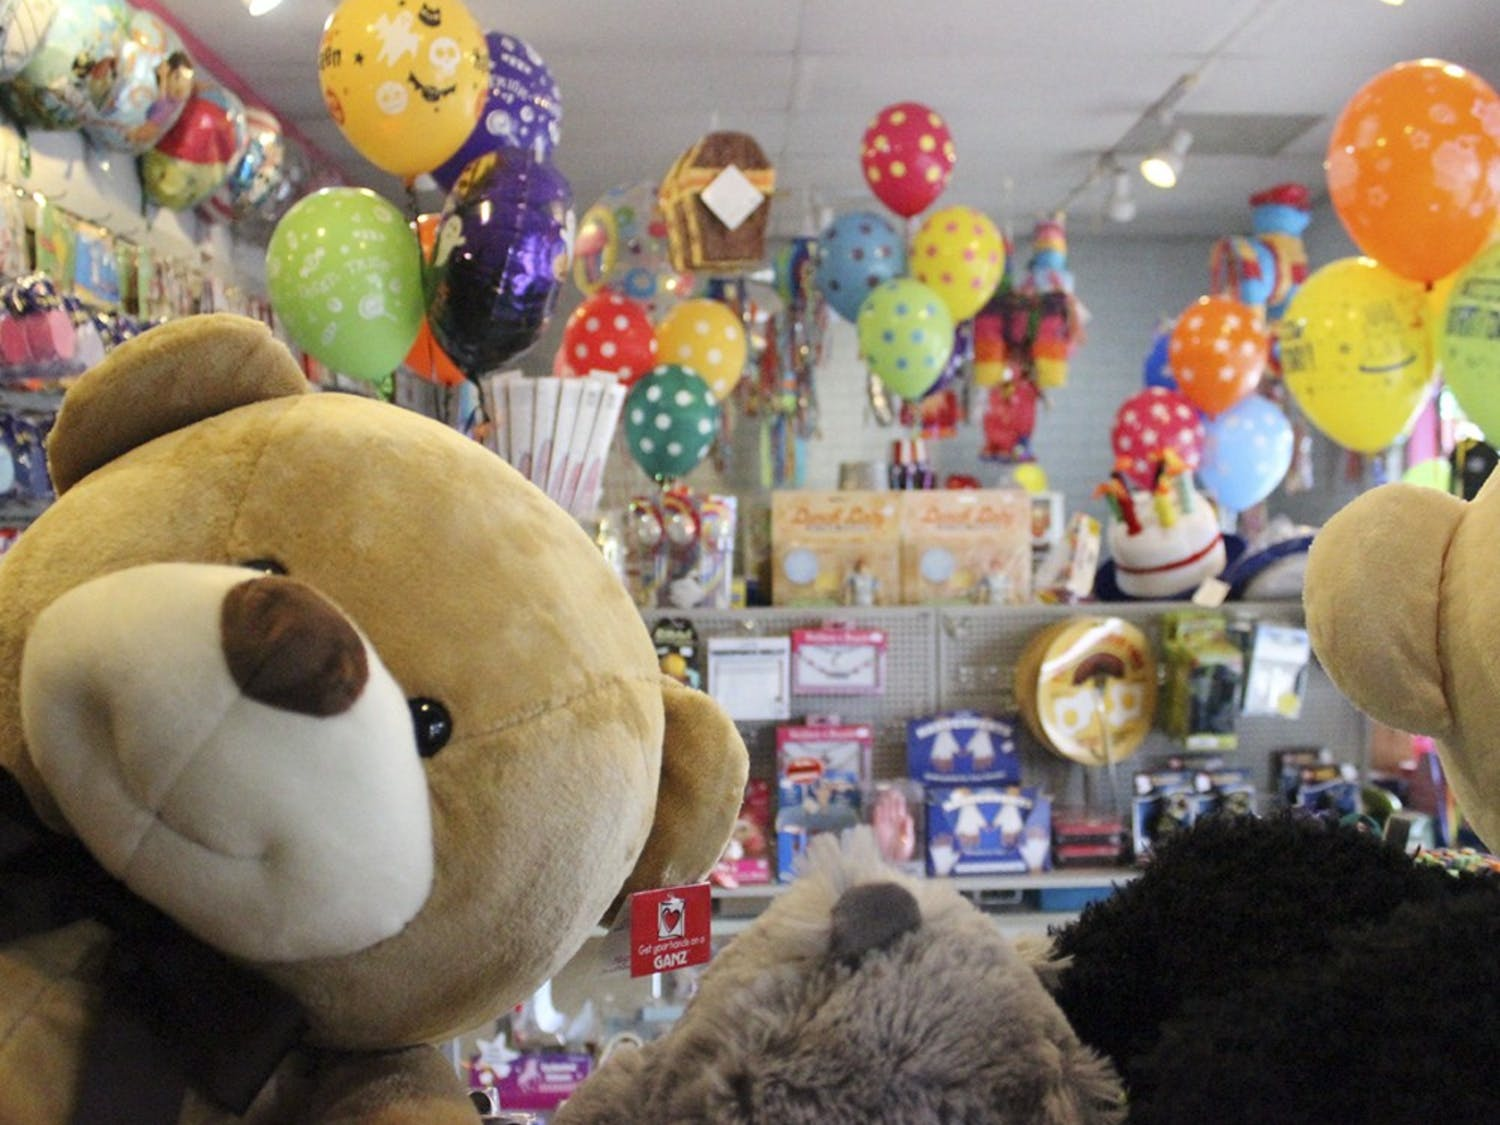 Balloons and Tunes, a balloons, decorations, and gifts store has been operating in Carrboro since 1980.